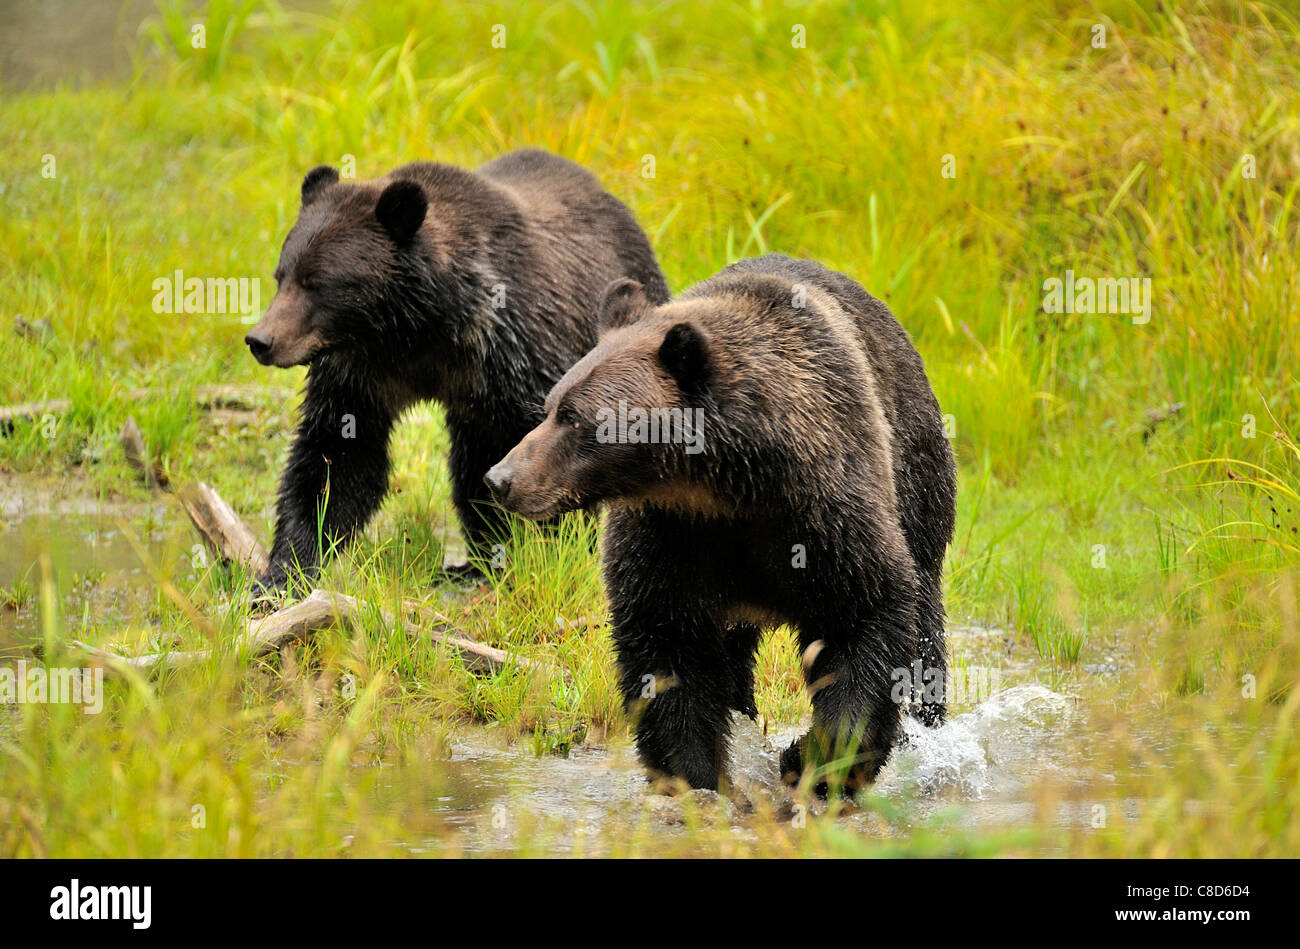 Two grizzly bears walking through the wet grass at the edge of a pond - Stock Image